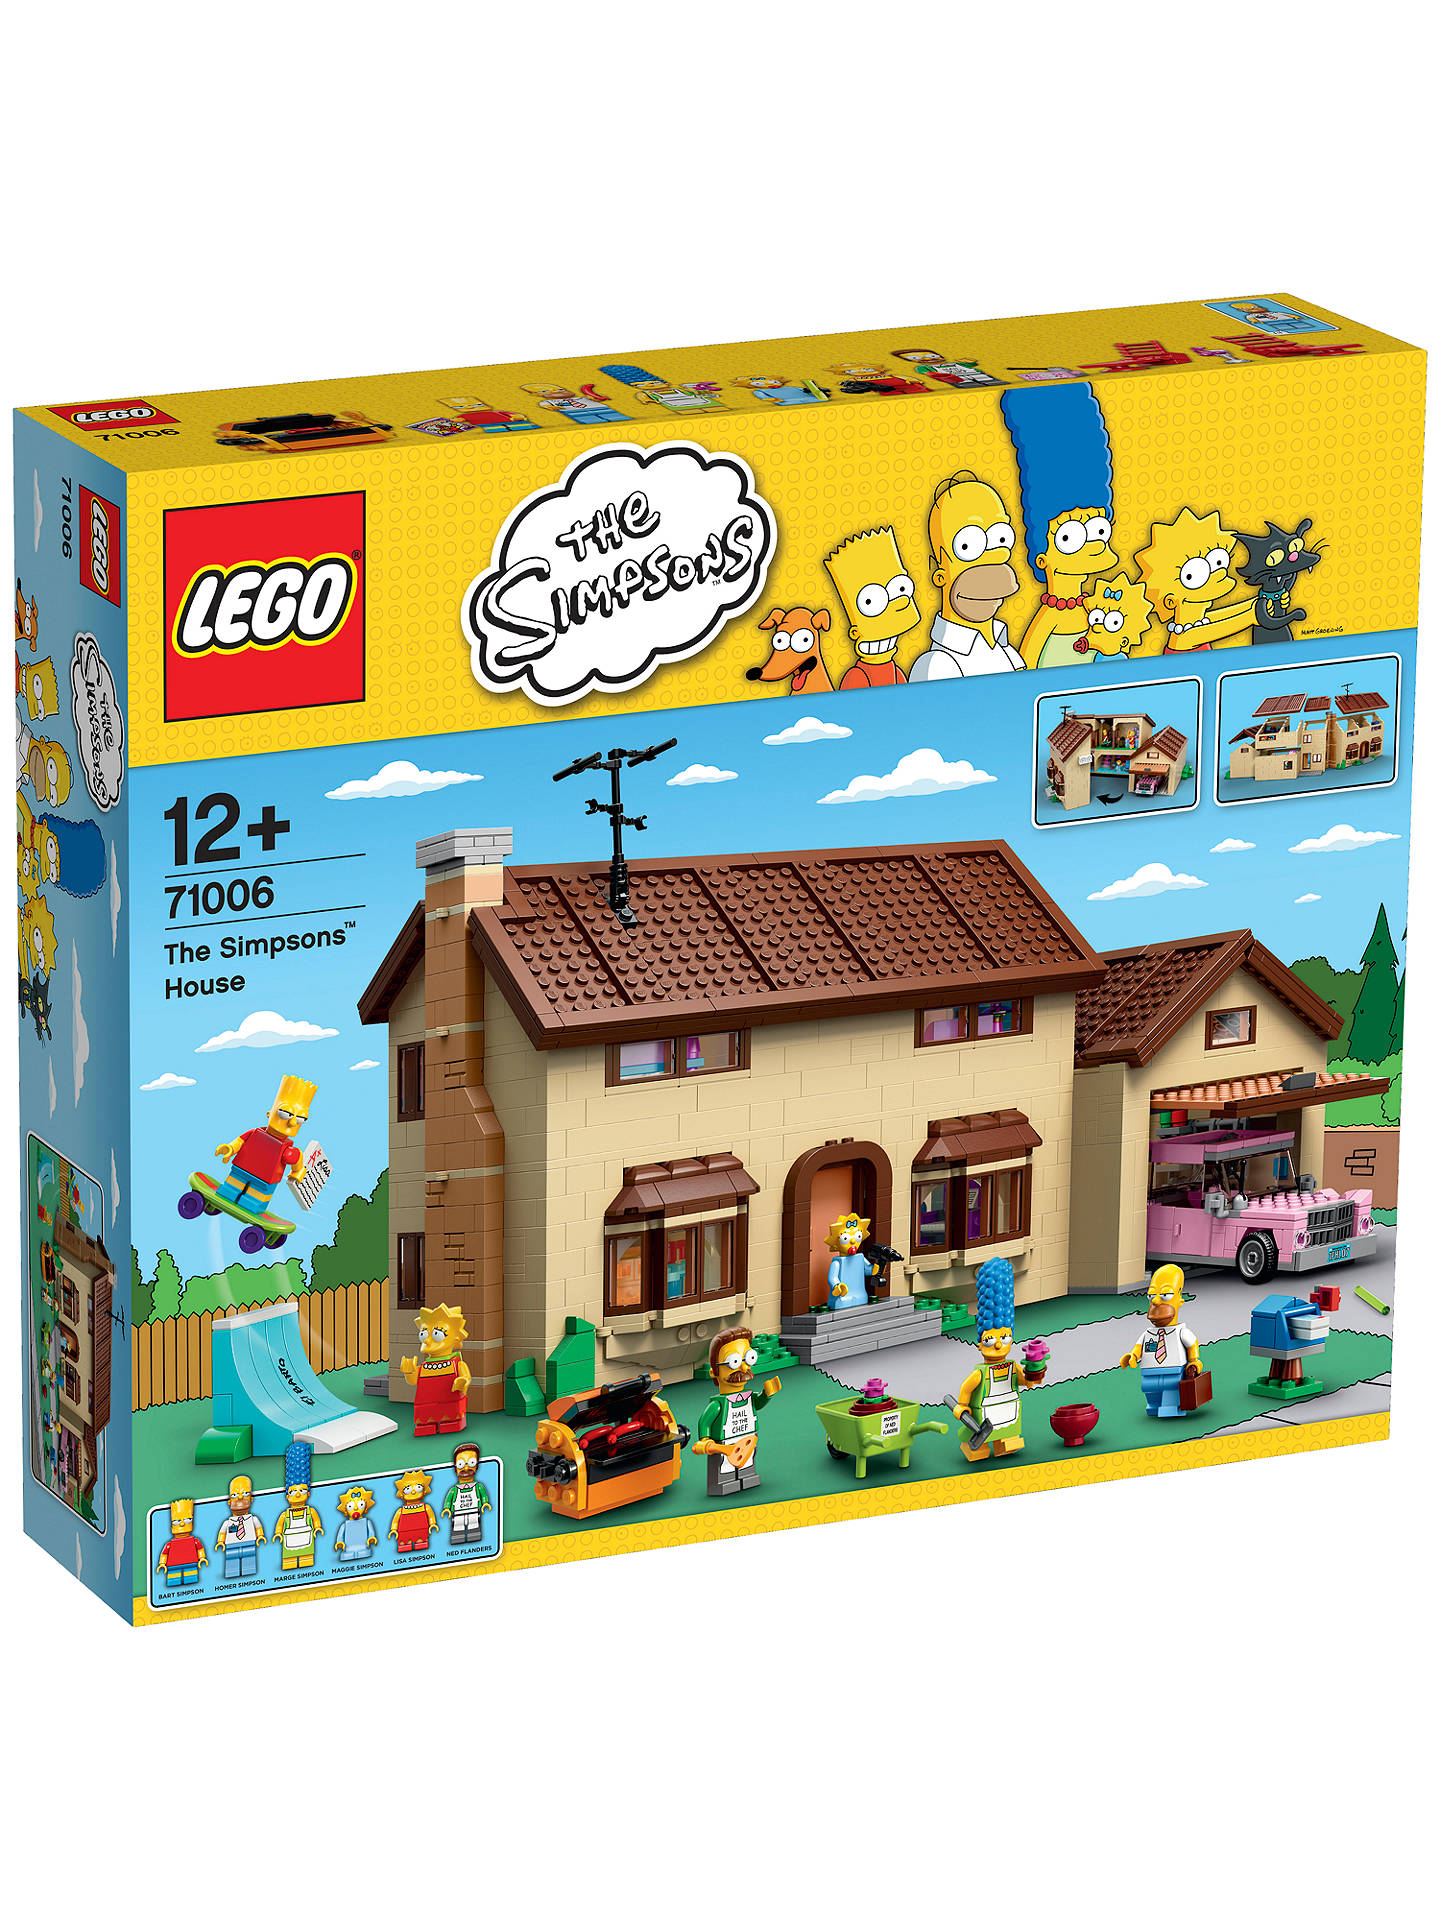 Lego The Simpsons 71006 The Simpsons House At John Lewis Partners